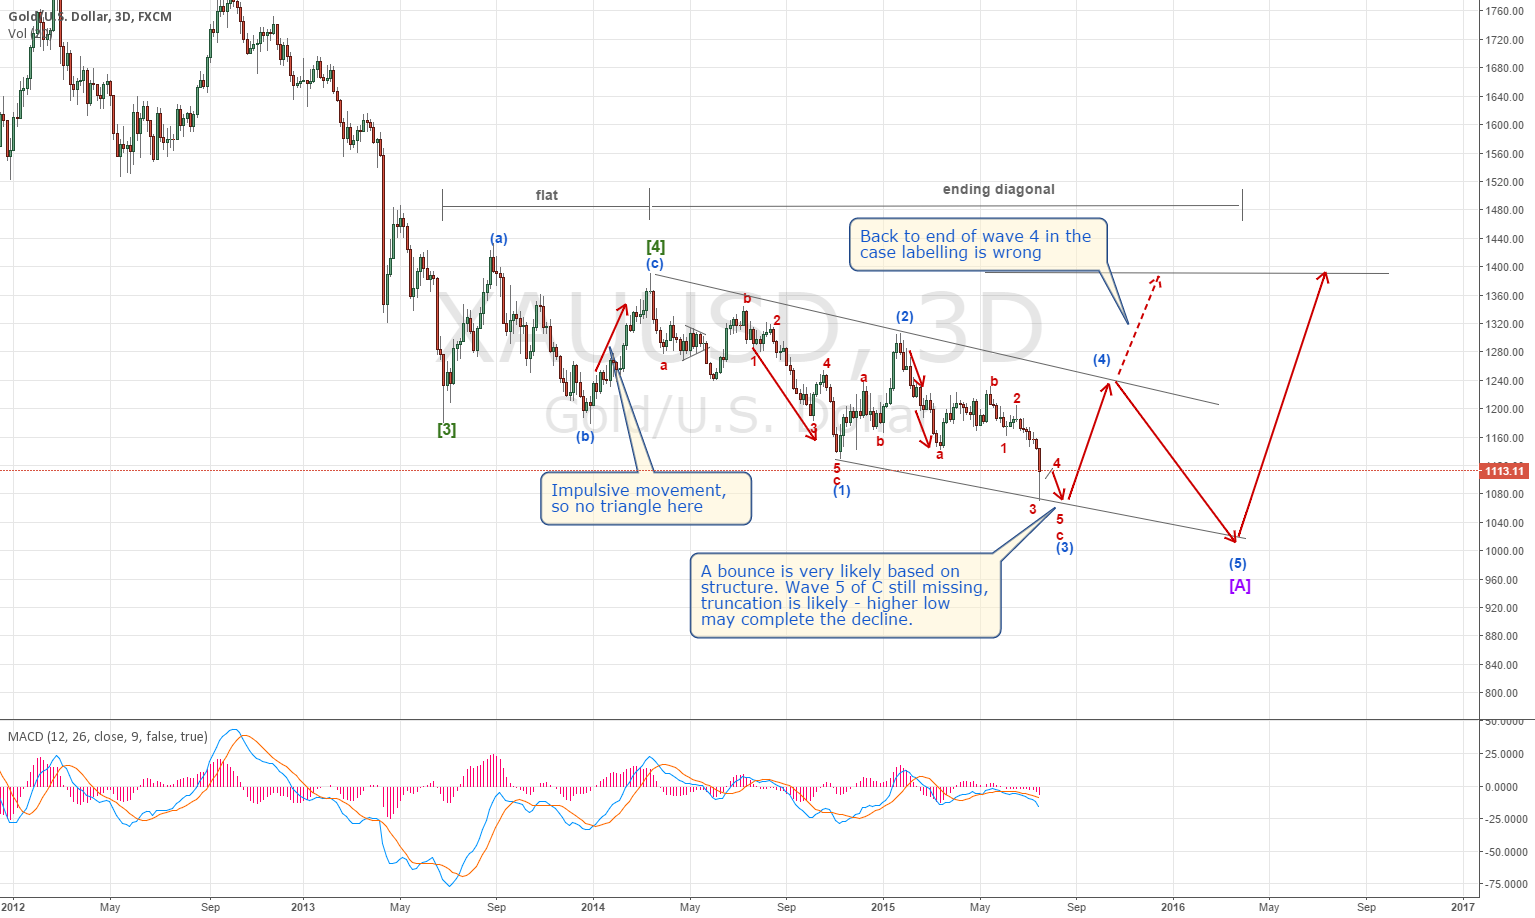 Gold: higher low is due, bounce to 1240 after.